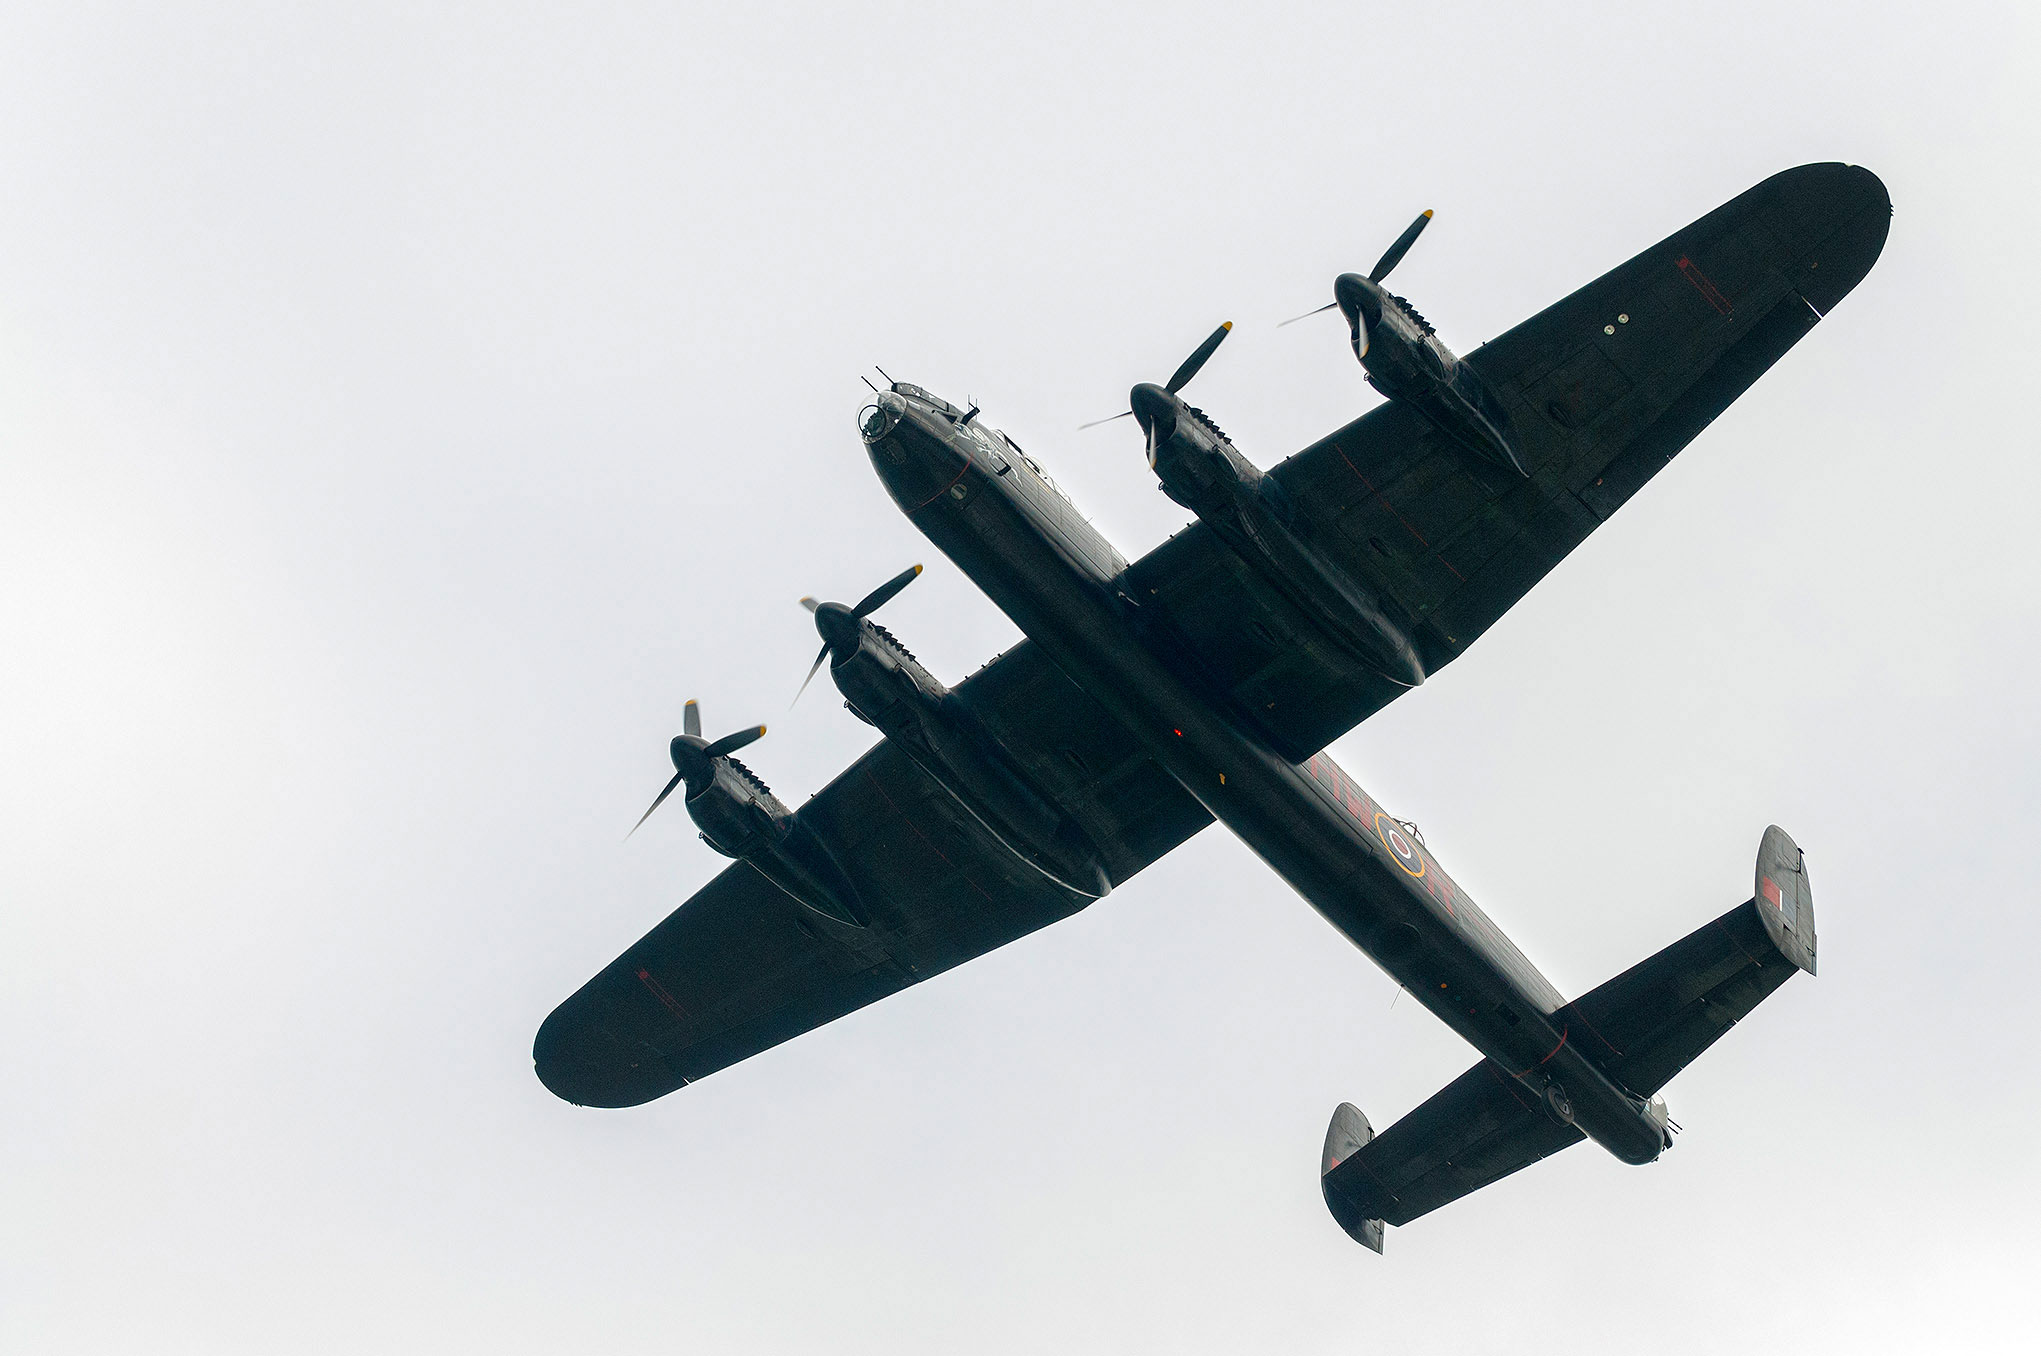 Lancaster from the Battle of Britain Memorial Flight